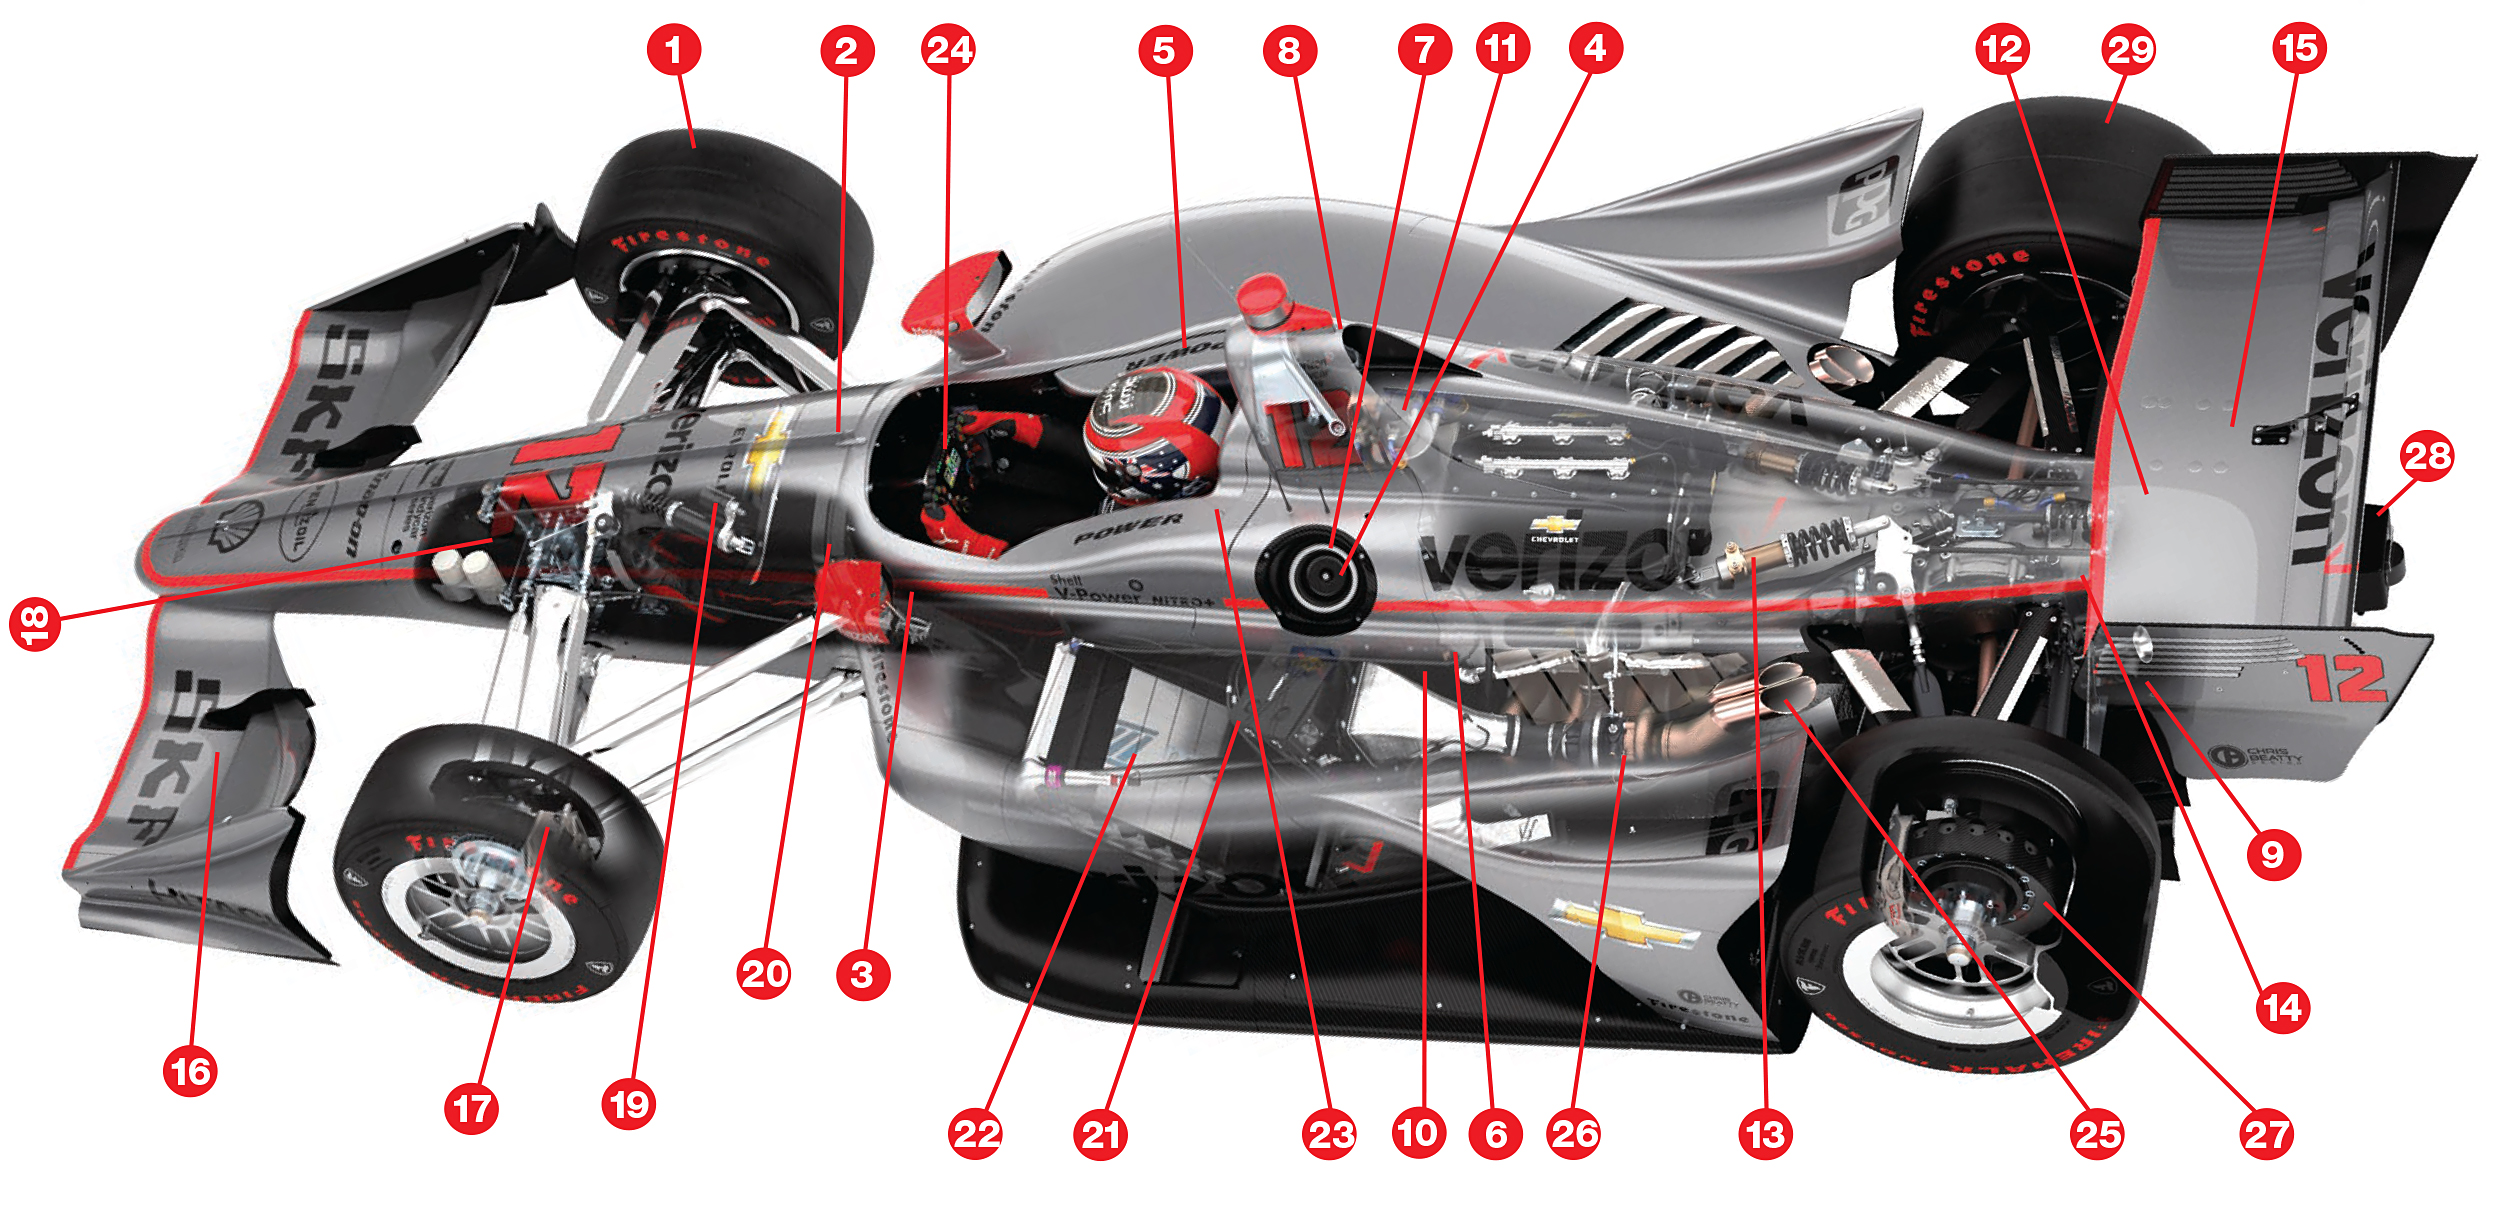 Anatomy Of An Indy Car on